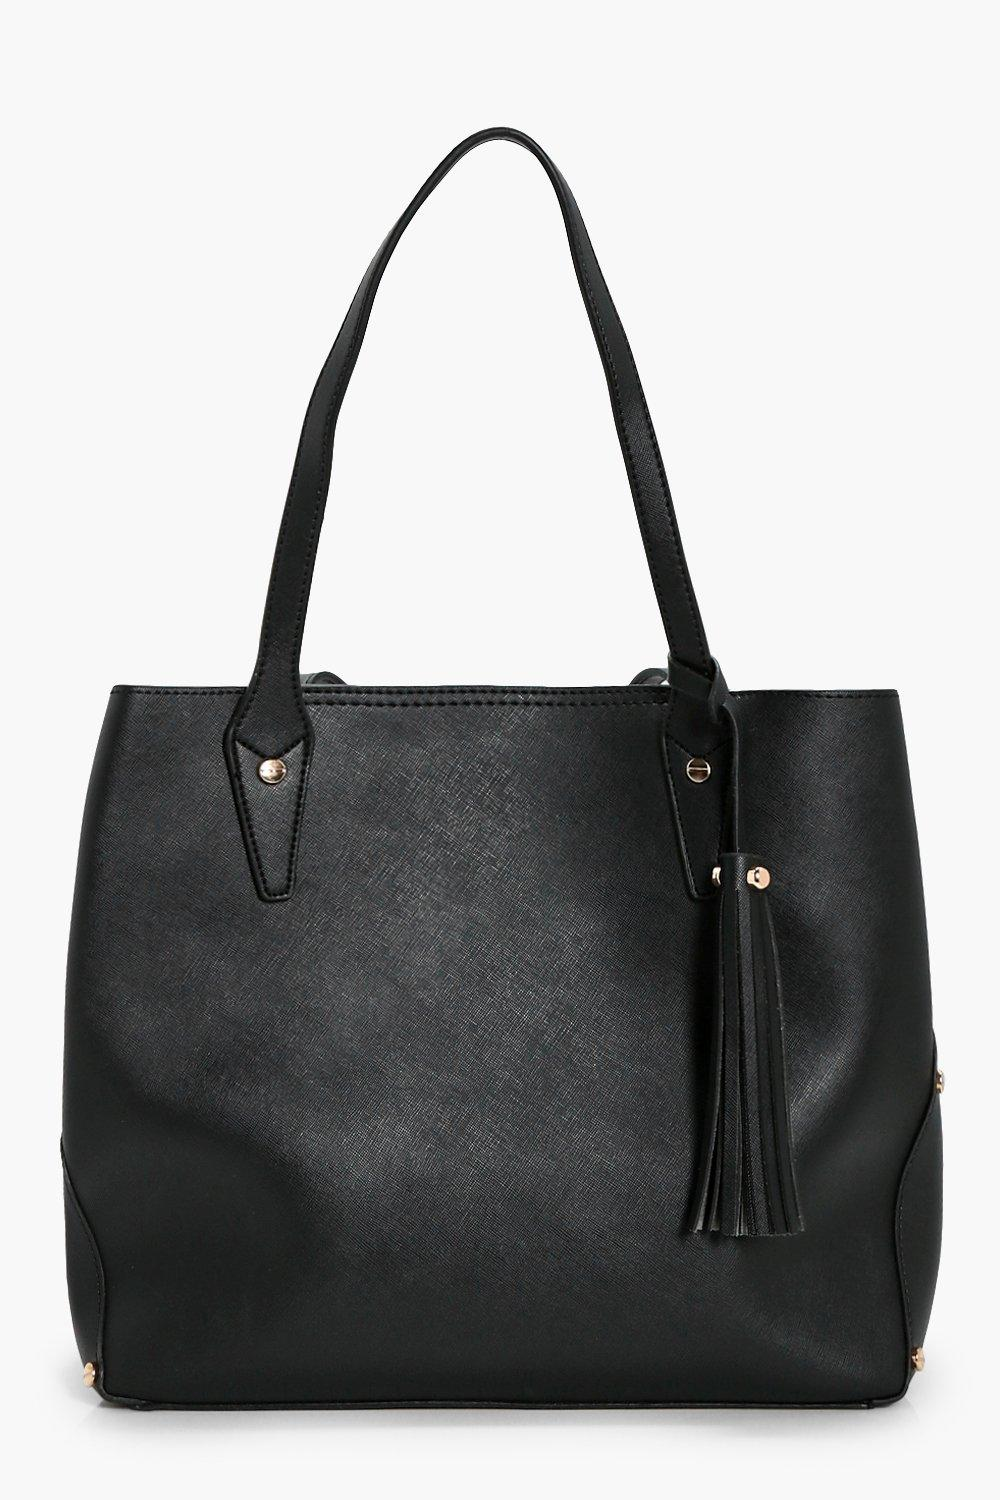 Crosshatch Multiway Tassel Tote Bag - black - Jane